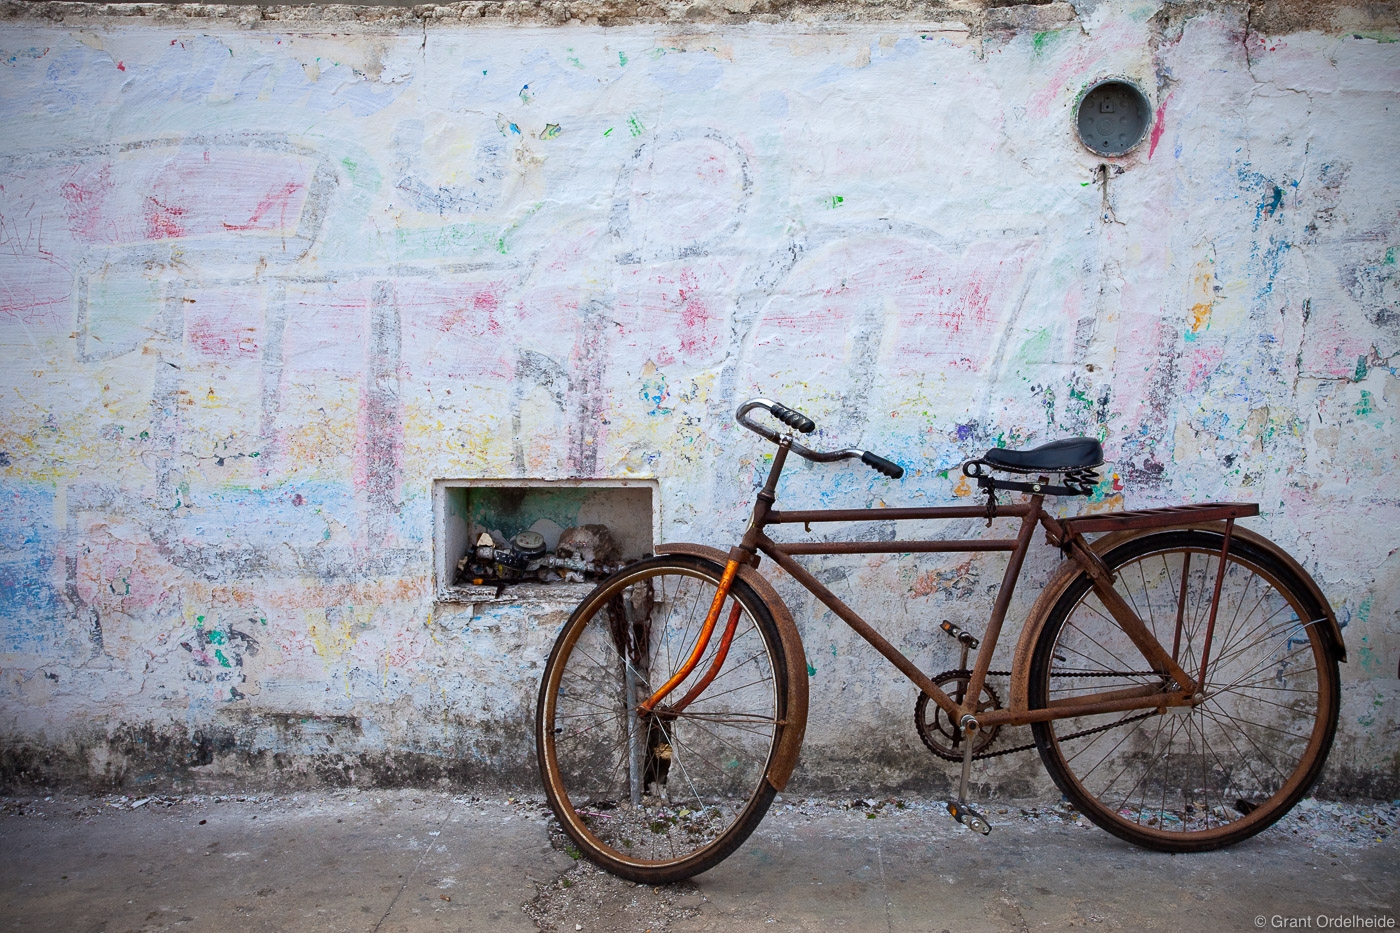 izamal, mexico, yucatan, old, rusty, bicycle, faded, wall, photo